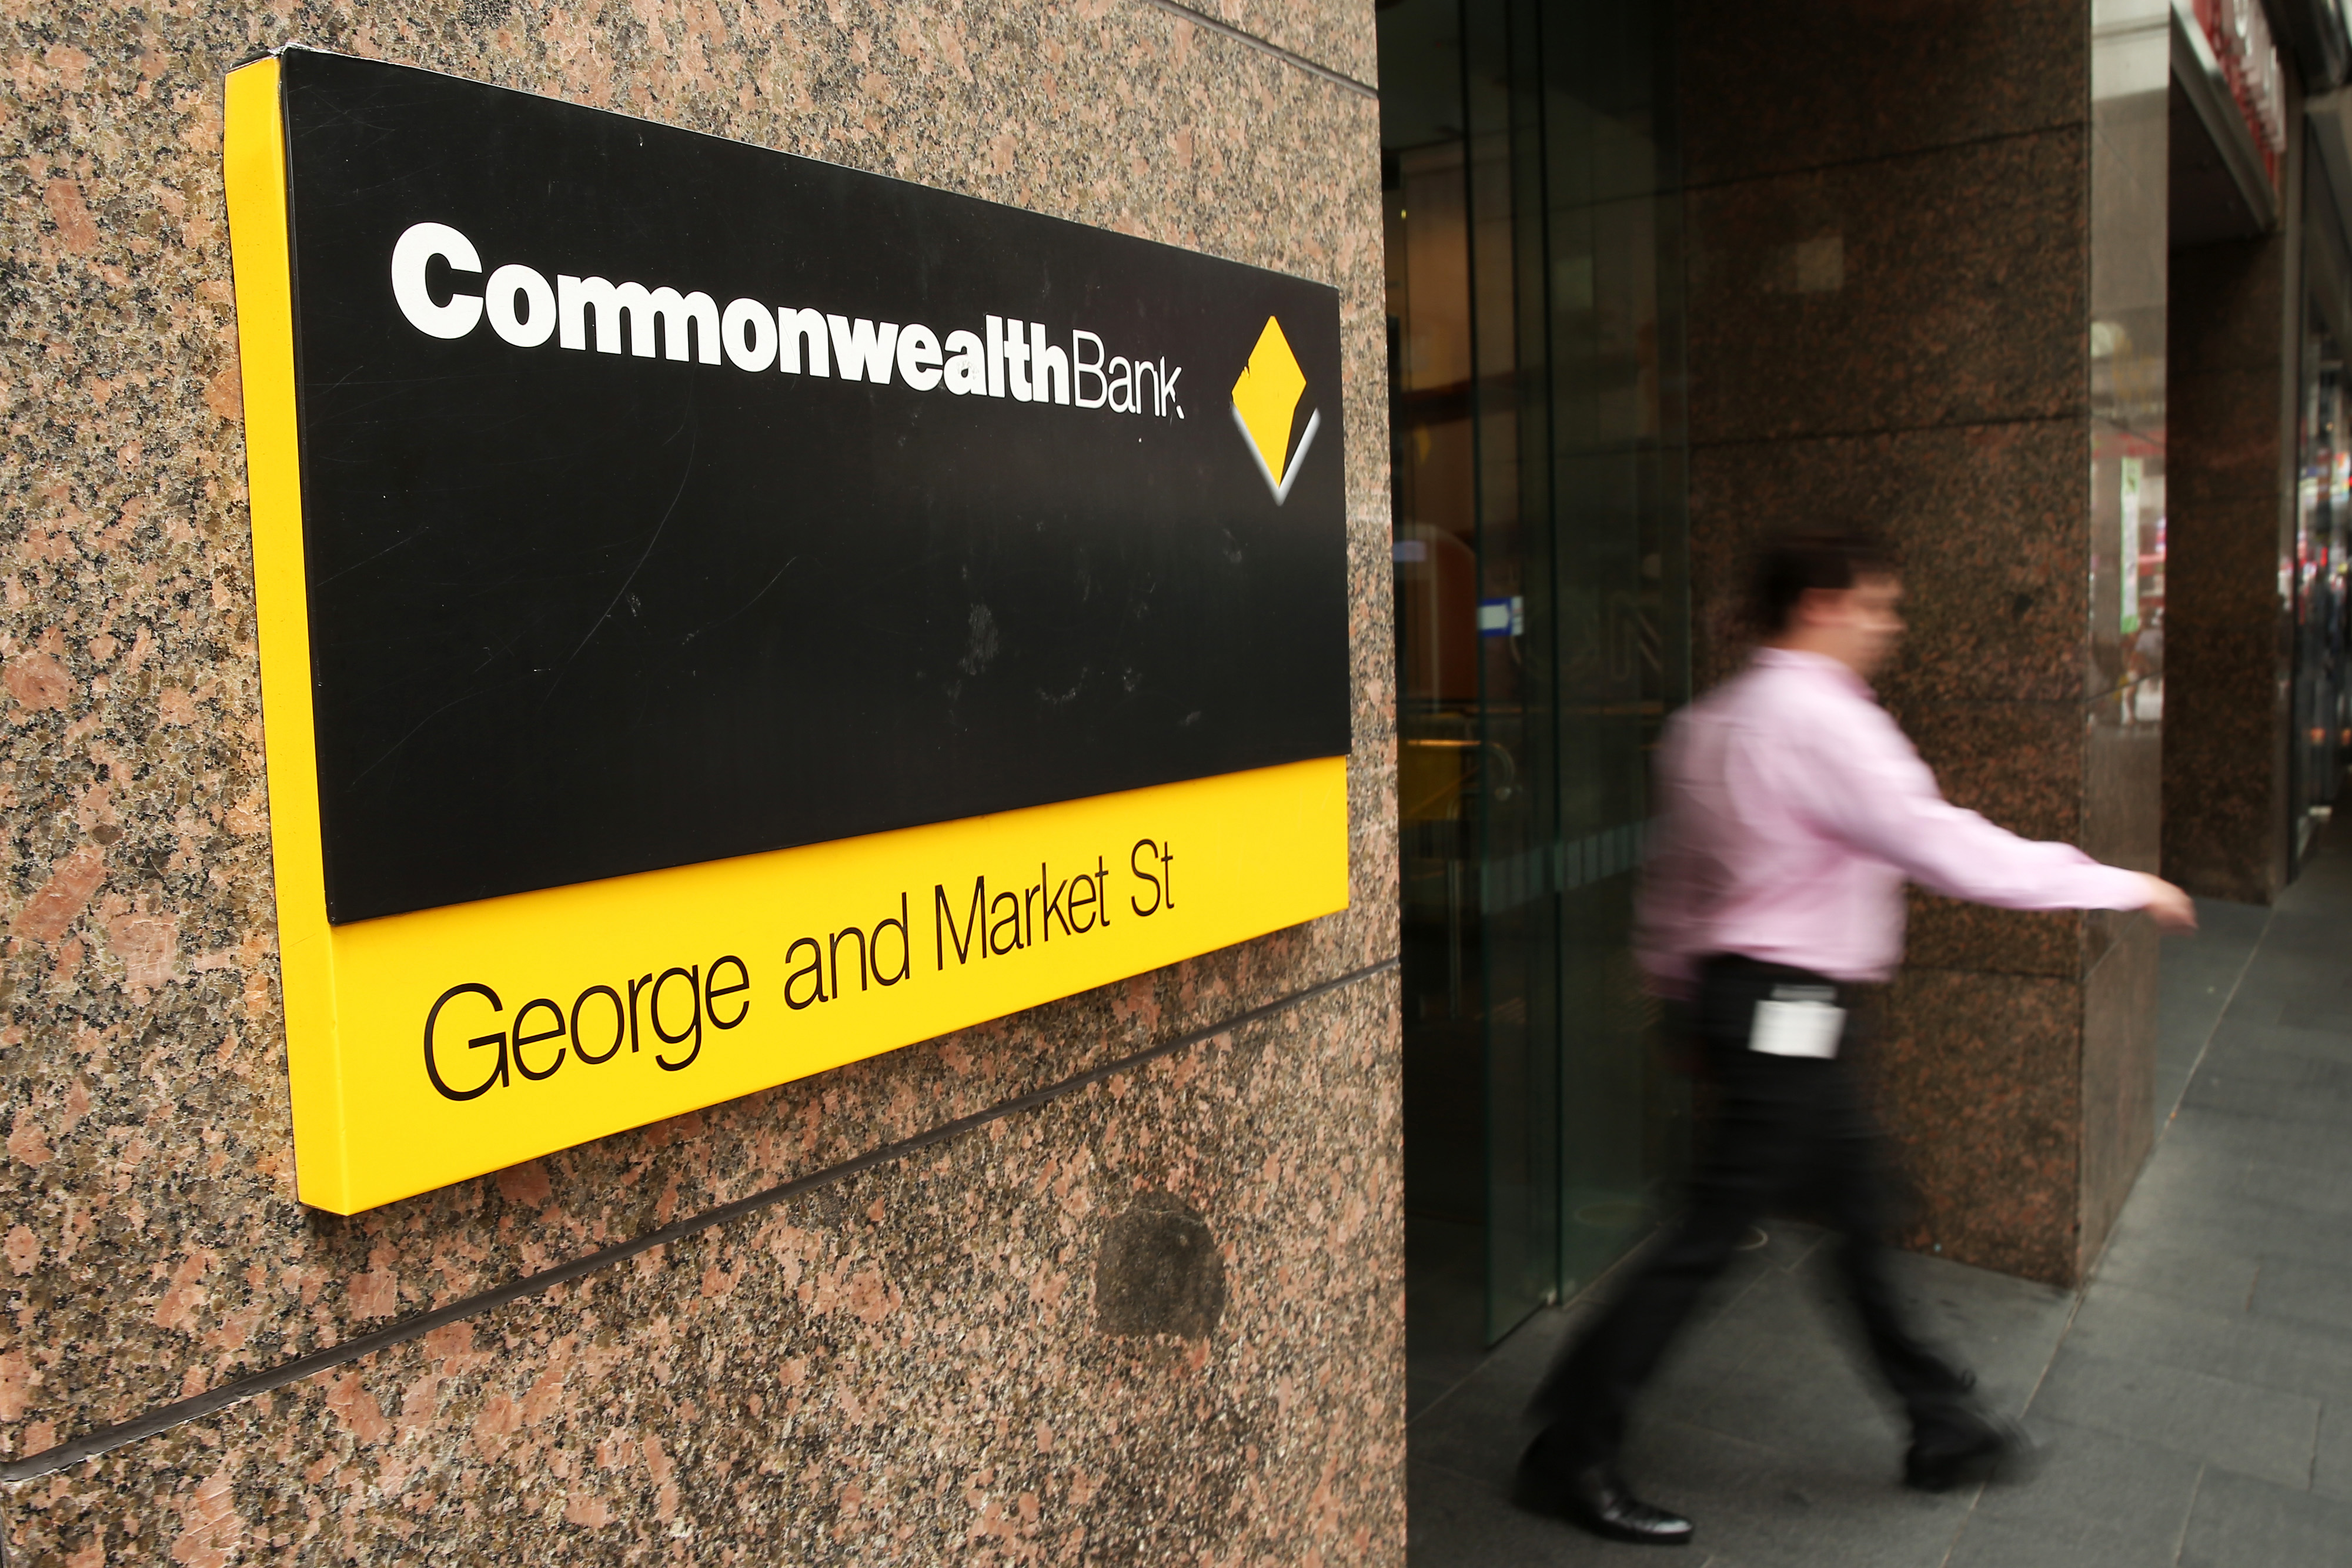 Images Of Commonwealth Bank Of Australia And The Sydney Financial District Ahead Of Earnings